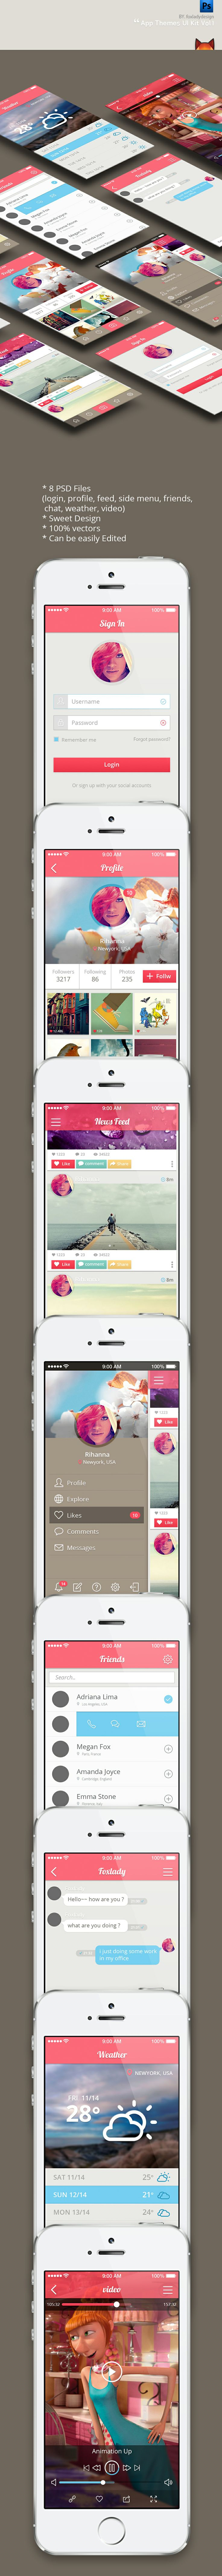 This is Creative App themes ui kit. login, profile, feed, side menu, friends, chat, weather, video 8set sweet style design. you can be easily edited. enjoy :-)